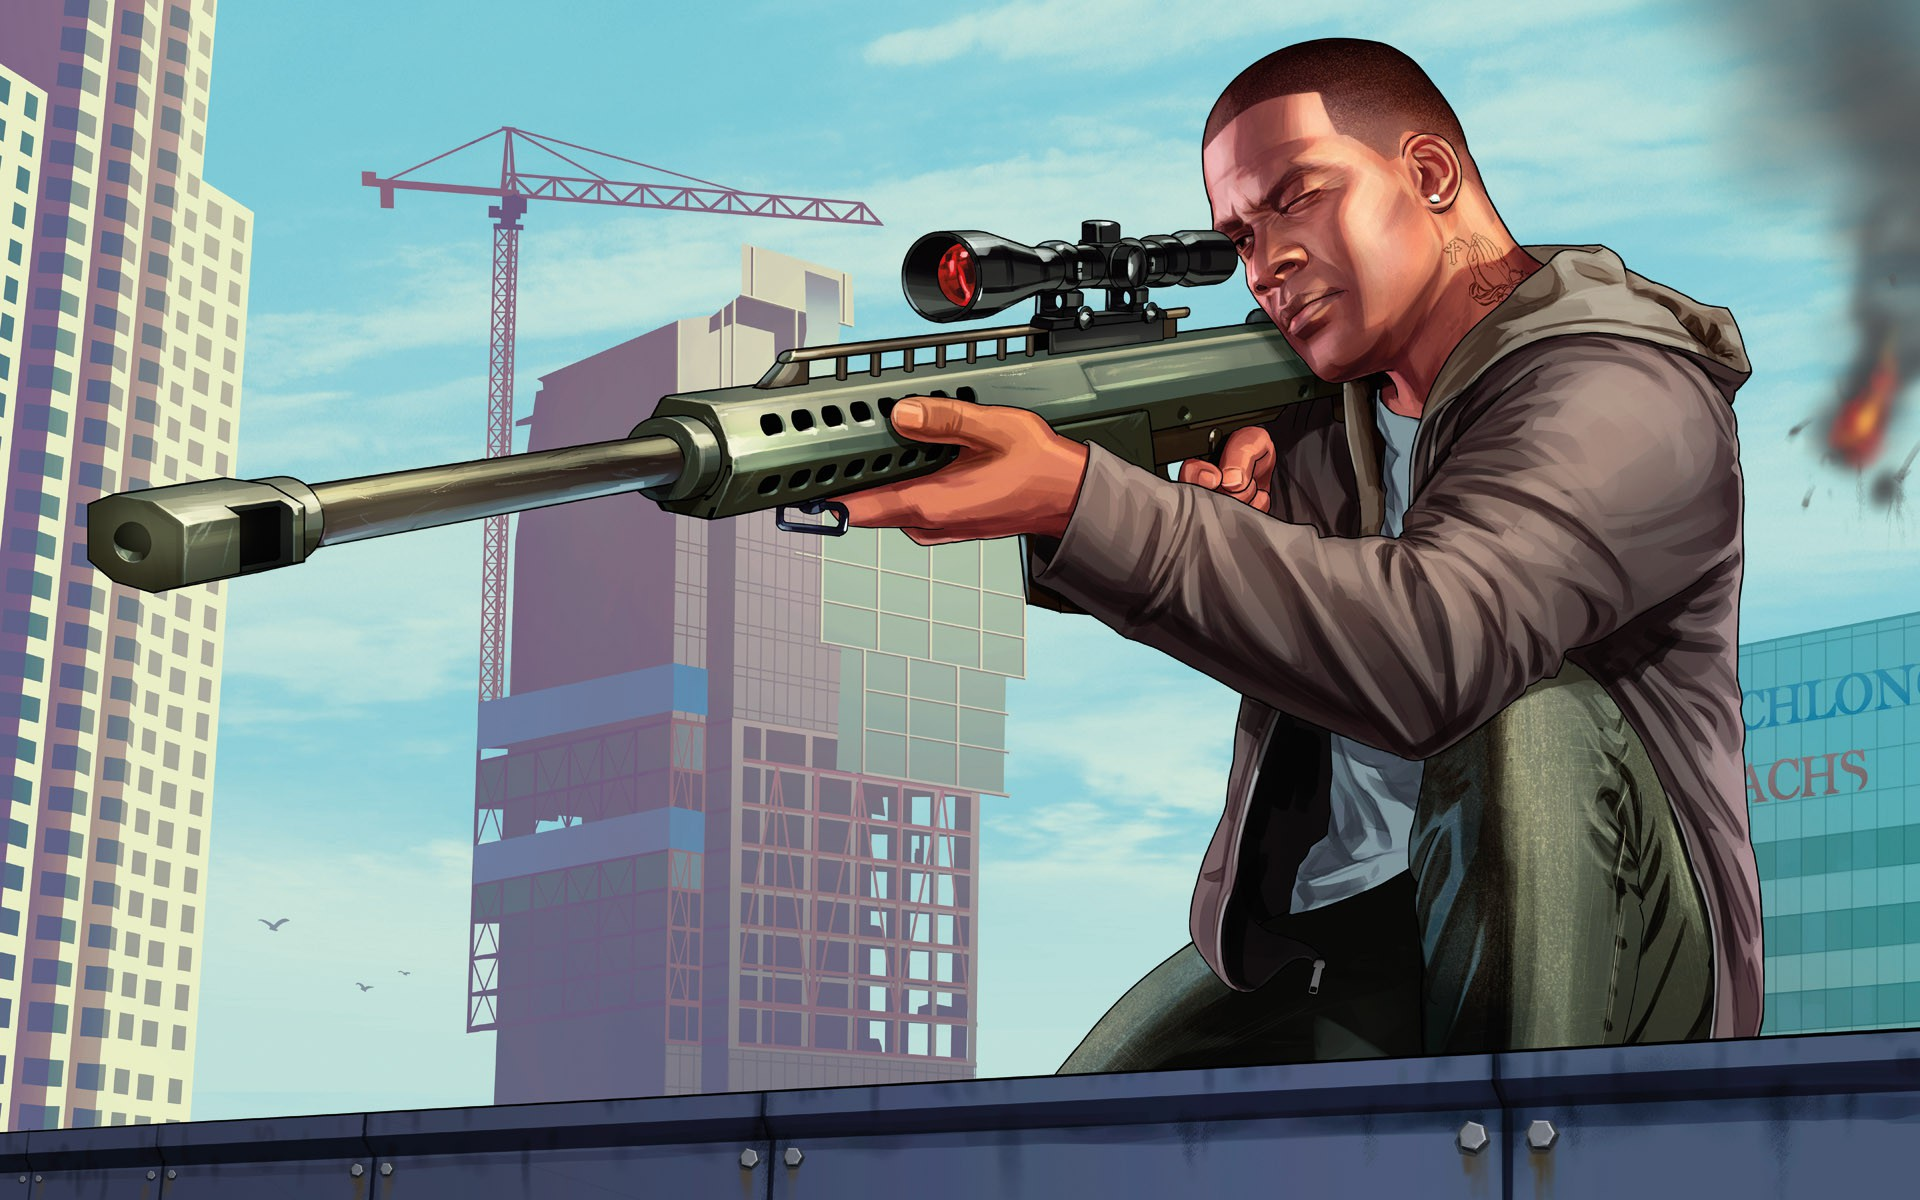 gta5-artwork-42-hd.jpg